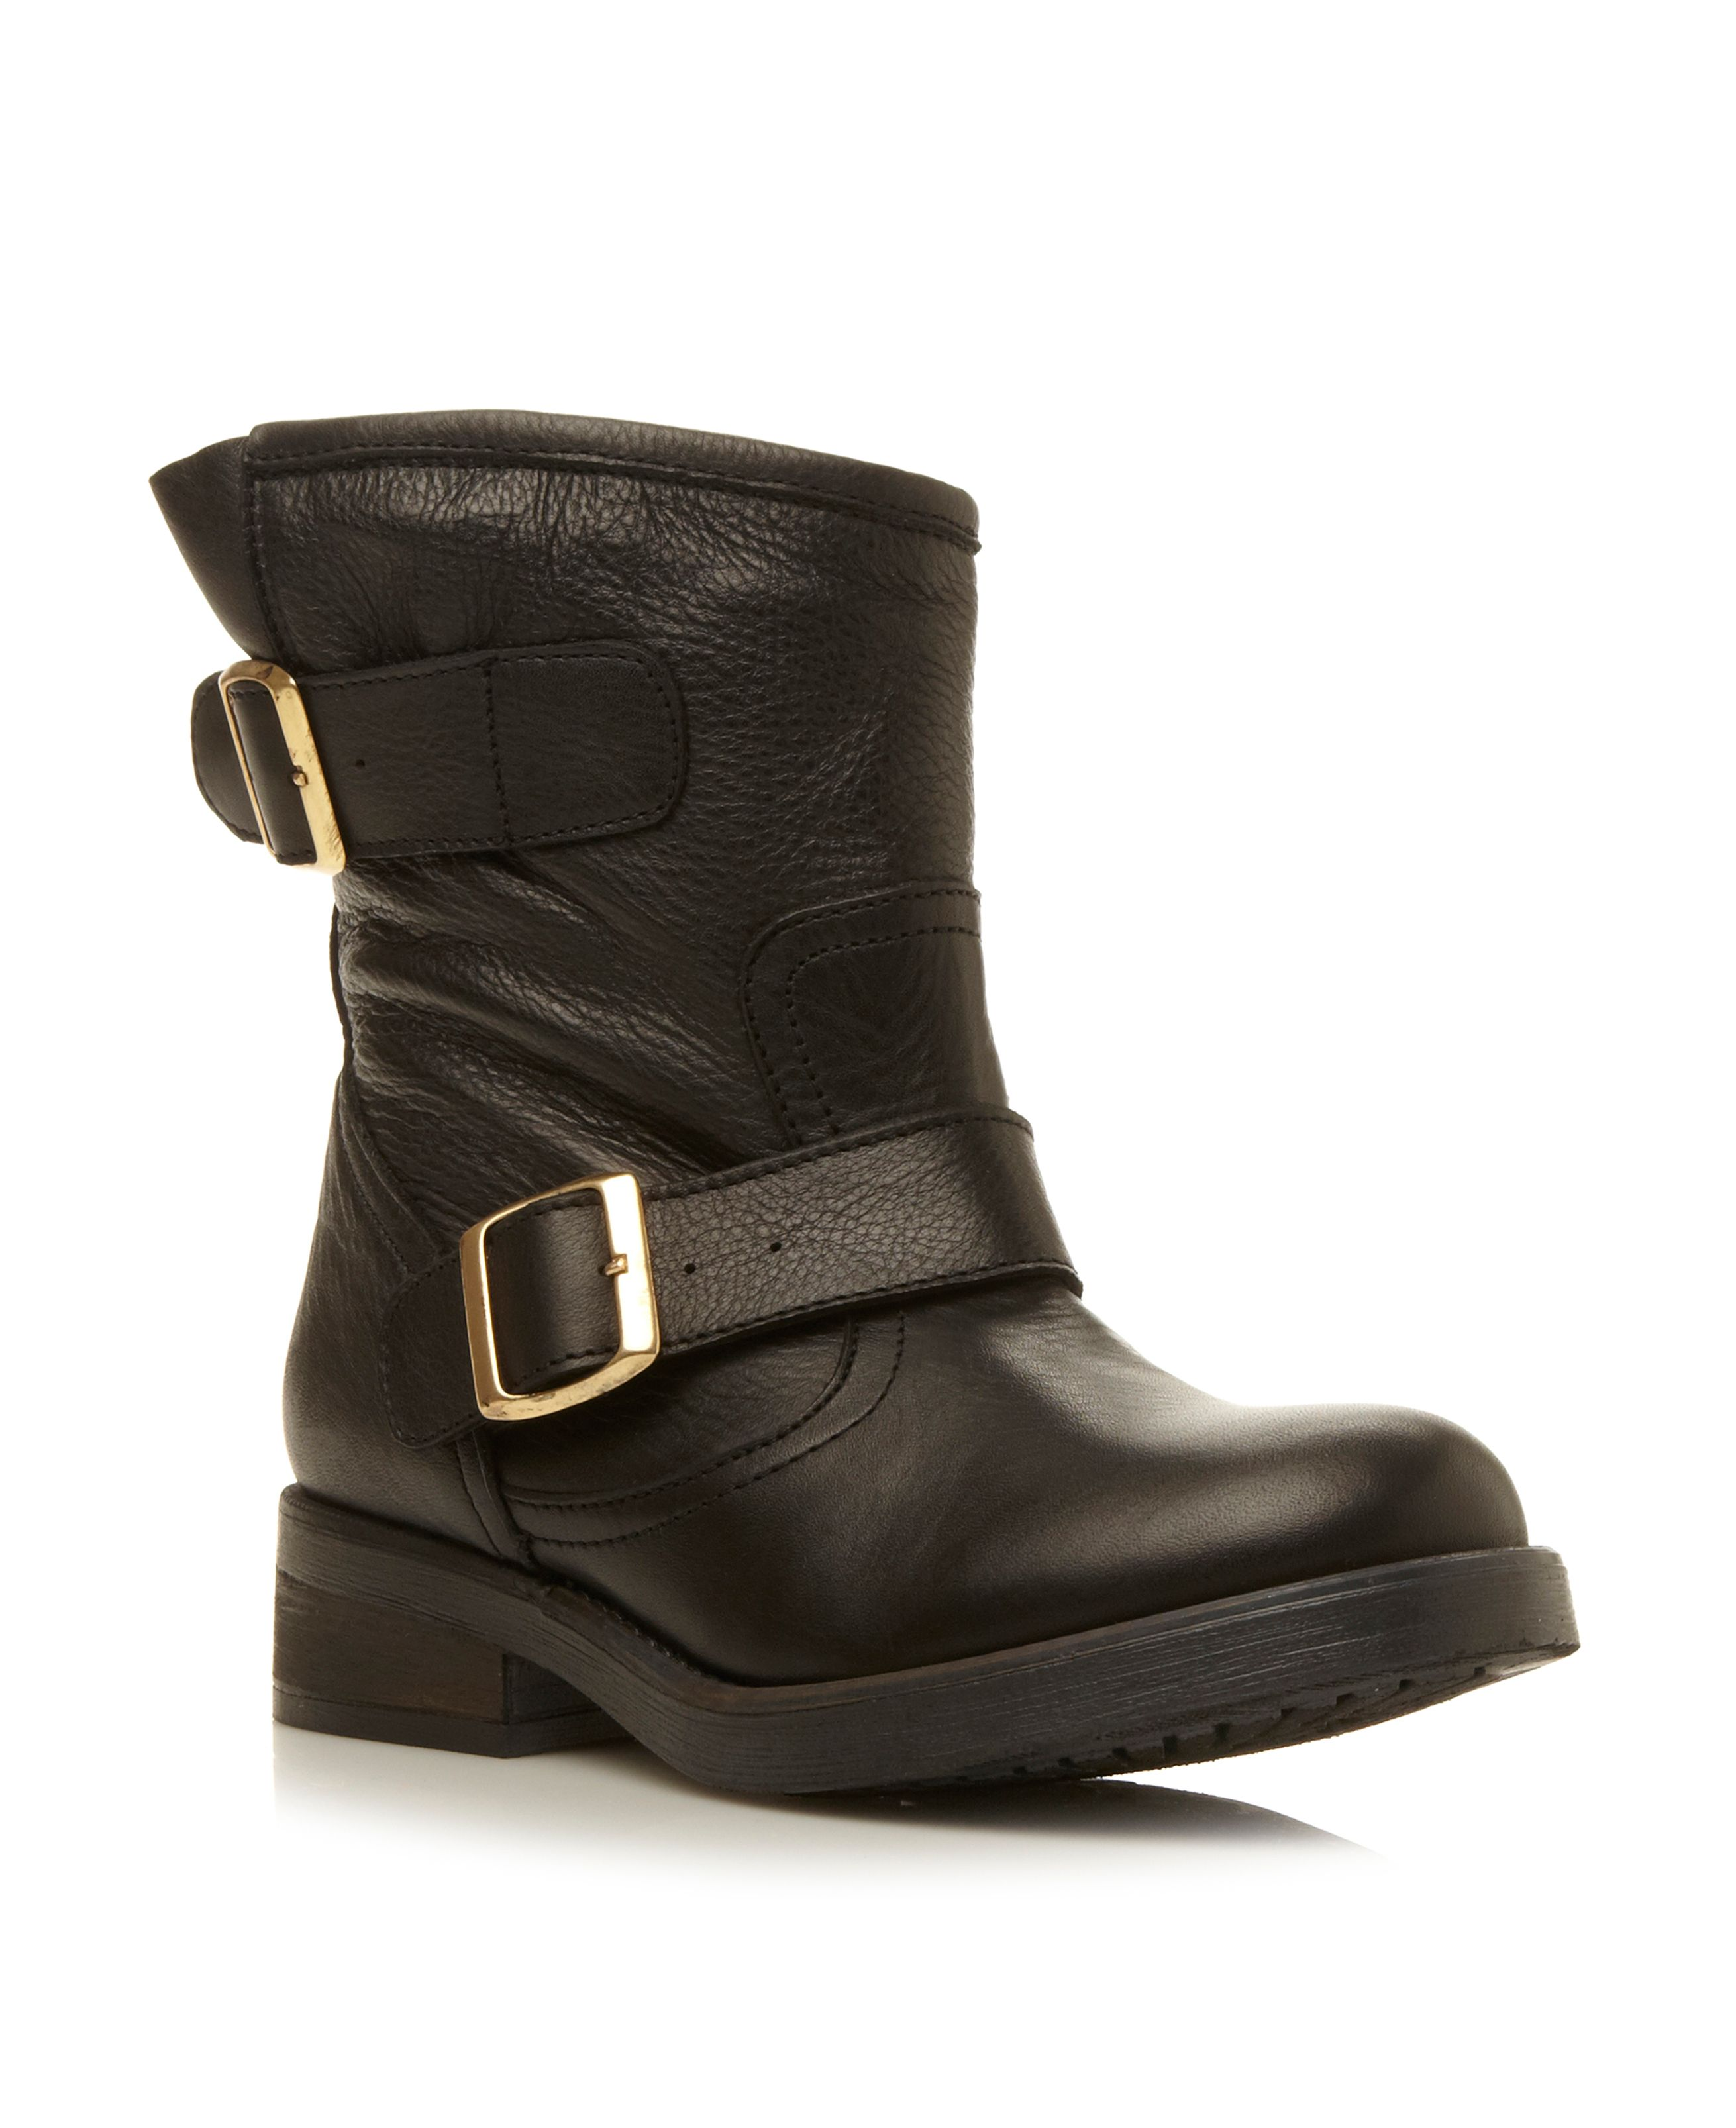 Msfresh buckle biker boots